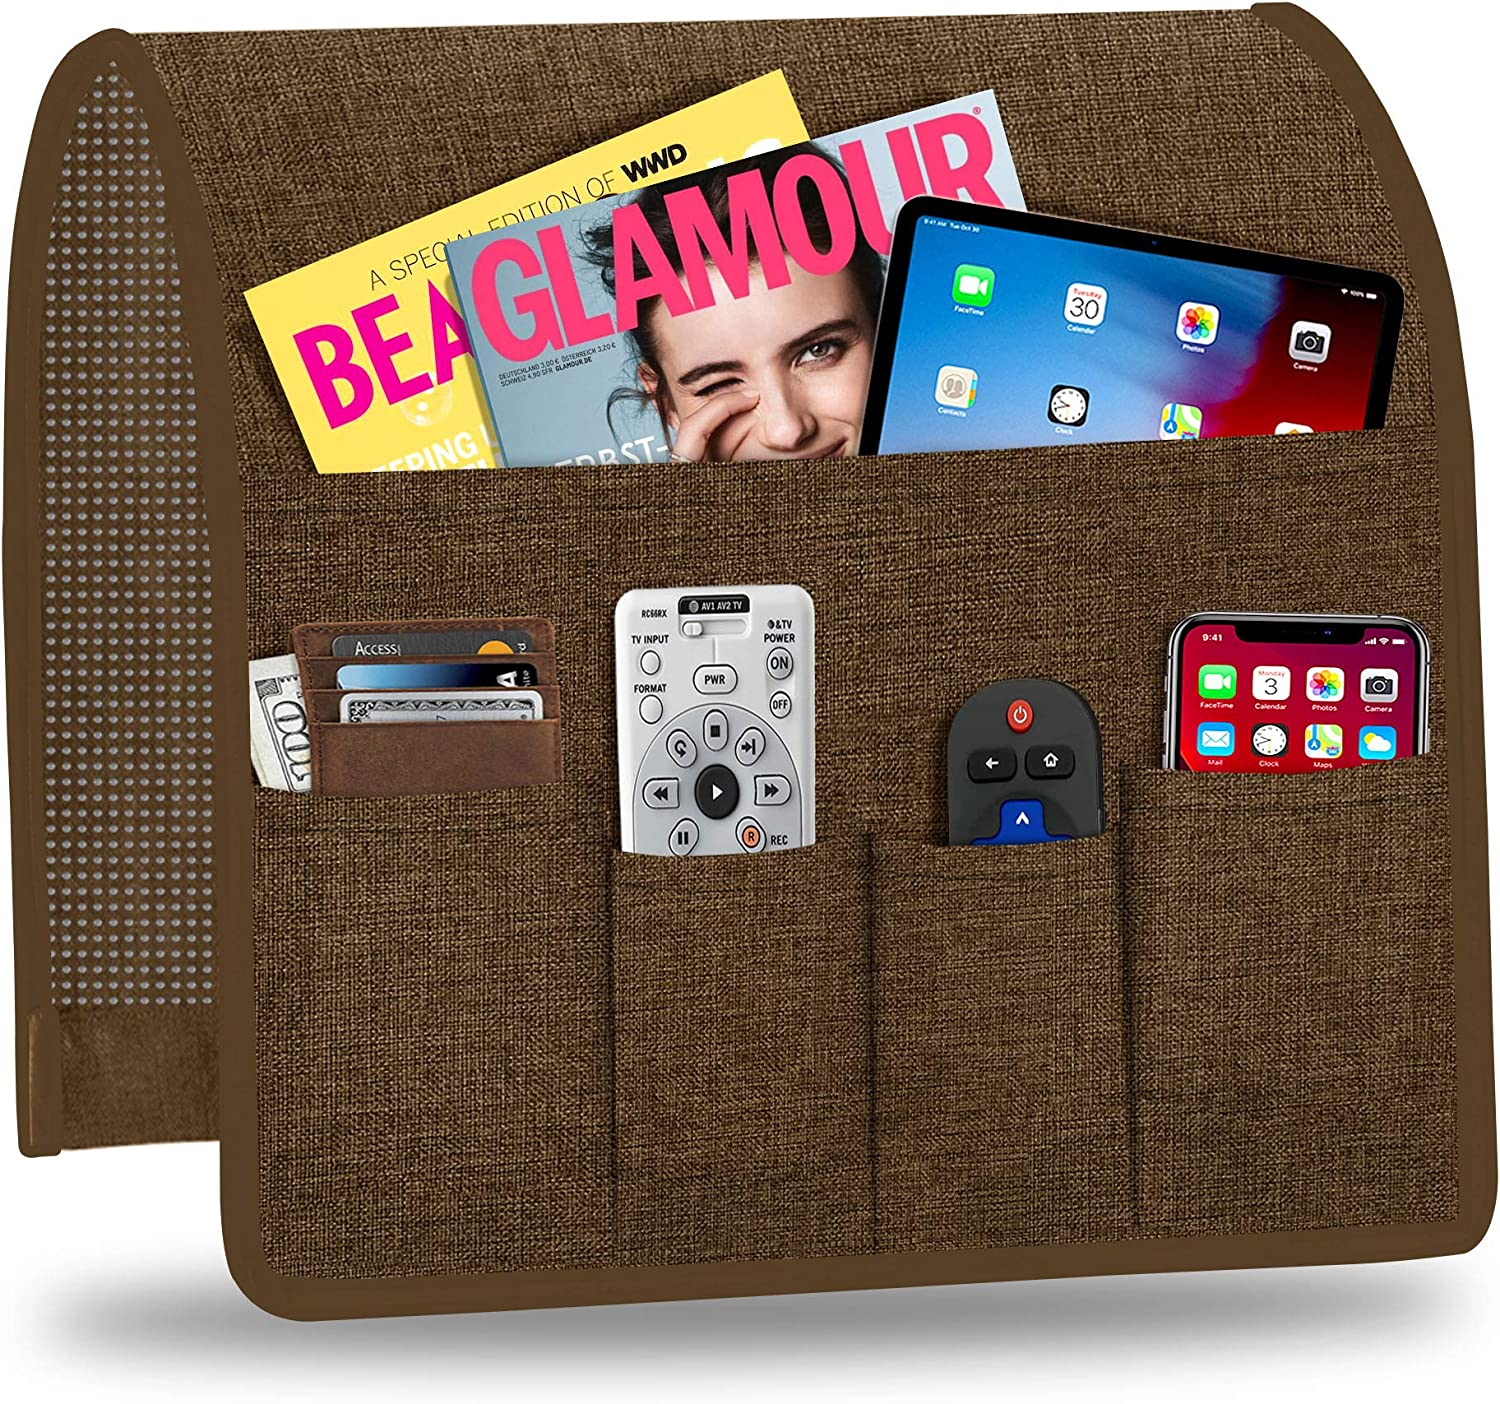 Naturoom Arm Chair Organizer, Armchair Caddy for Recliner Non-Slip Couch Caddy with 5 Pockets Arm Chair Caddy for Smart Phone, Book, Magazines, Ipad, TV Remote Control Holder(Coffee,13'' x 35'')